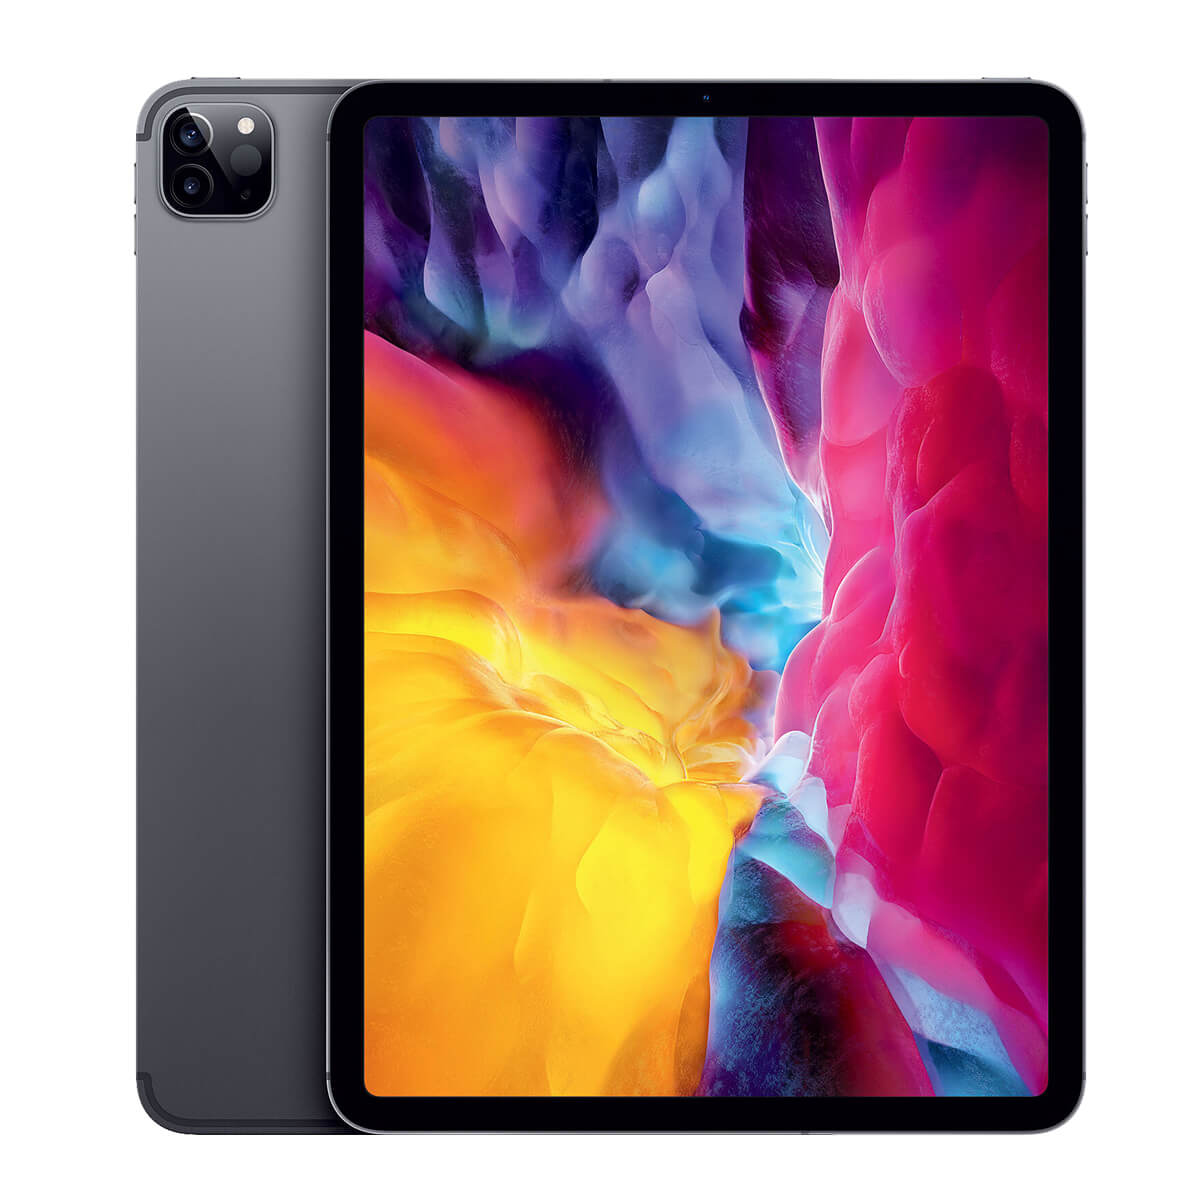 APPLE平板 iPad Pro 11 2代 Wi-Fi (128G)